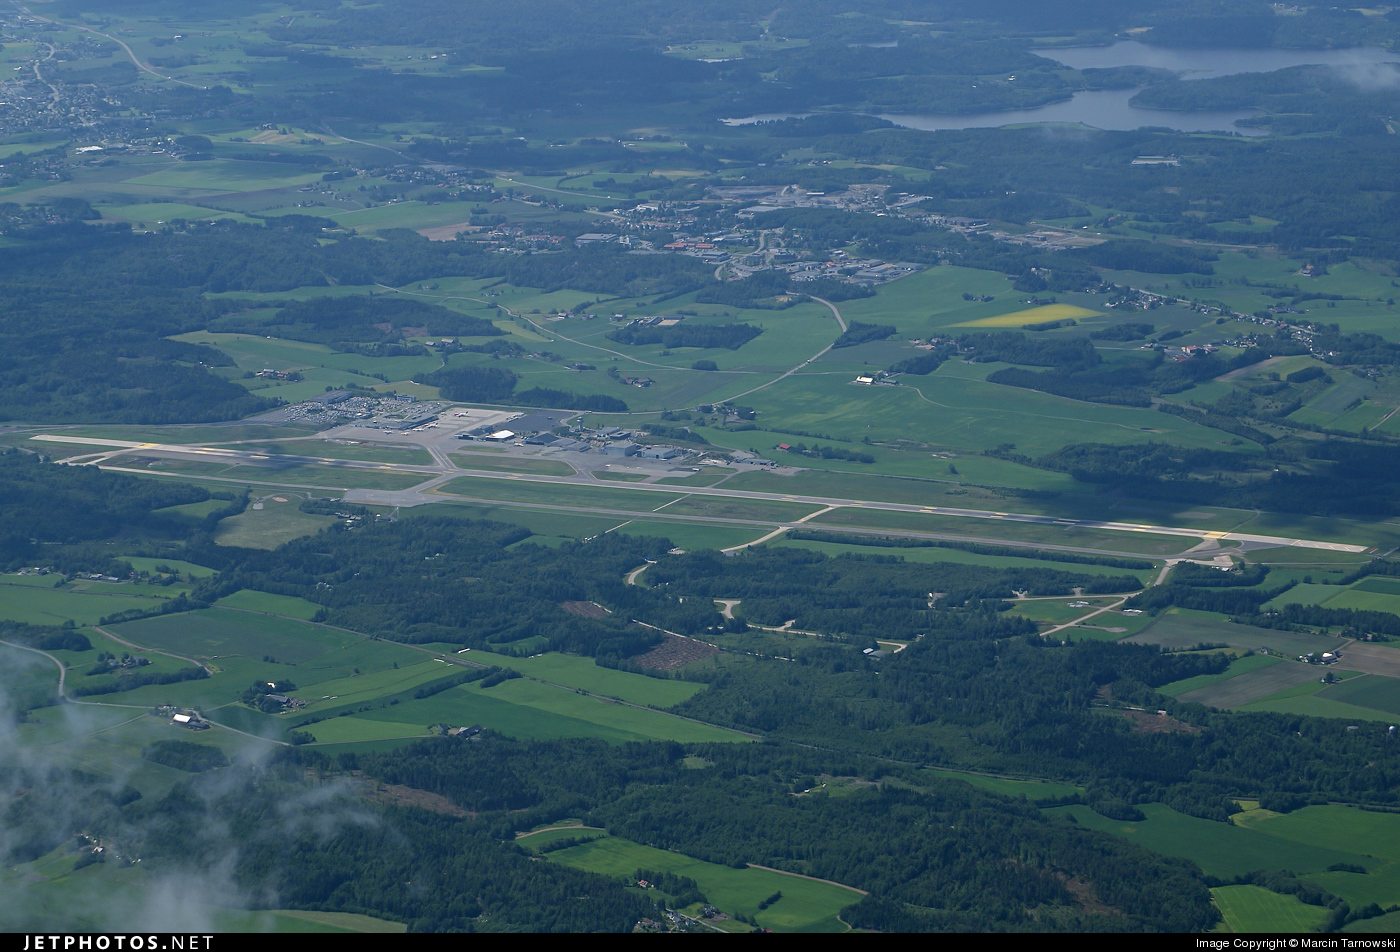 ENTO - Airport - Airport Overview